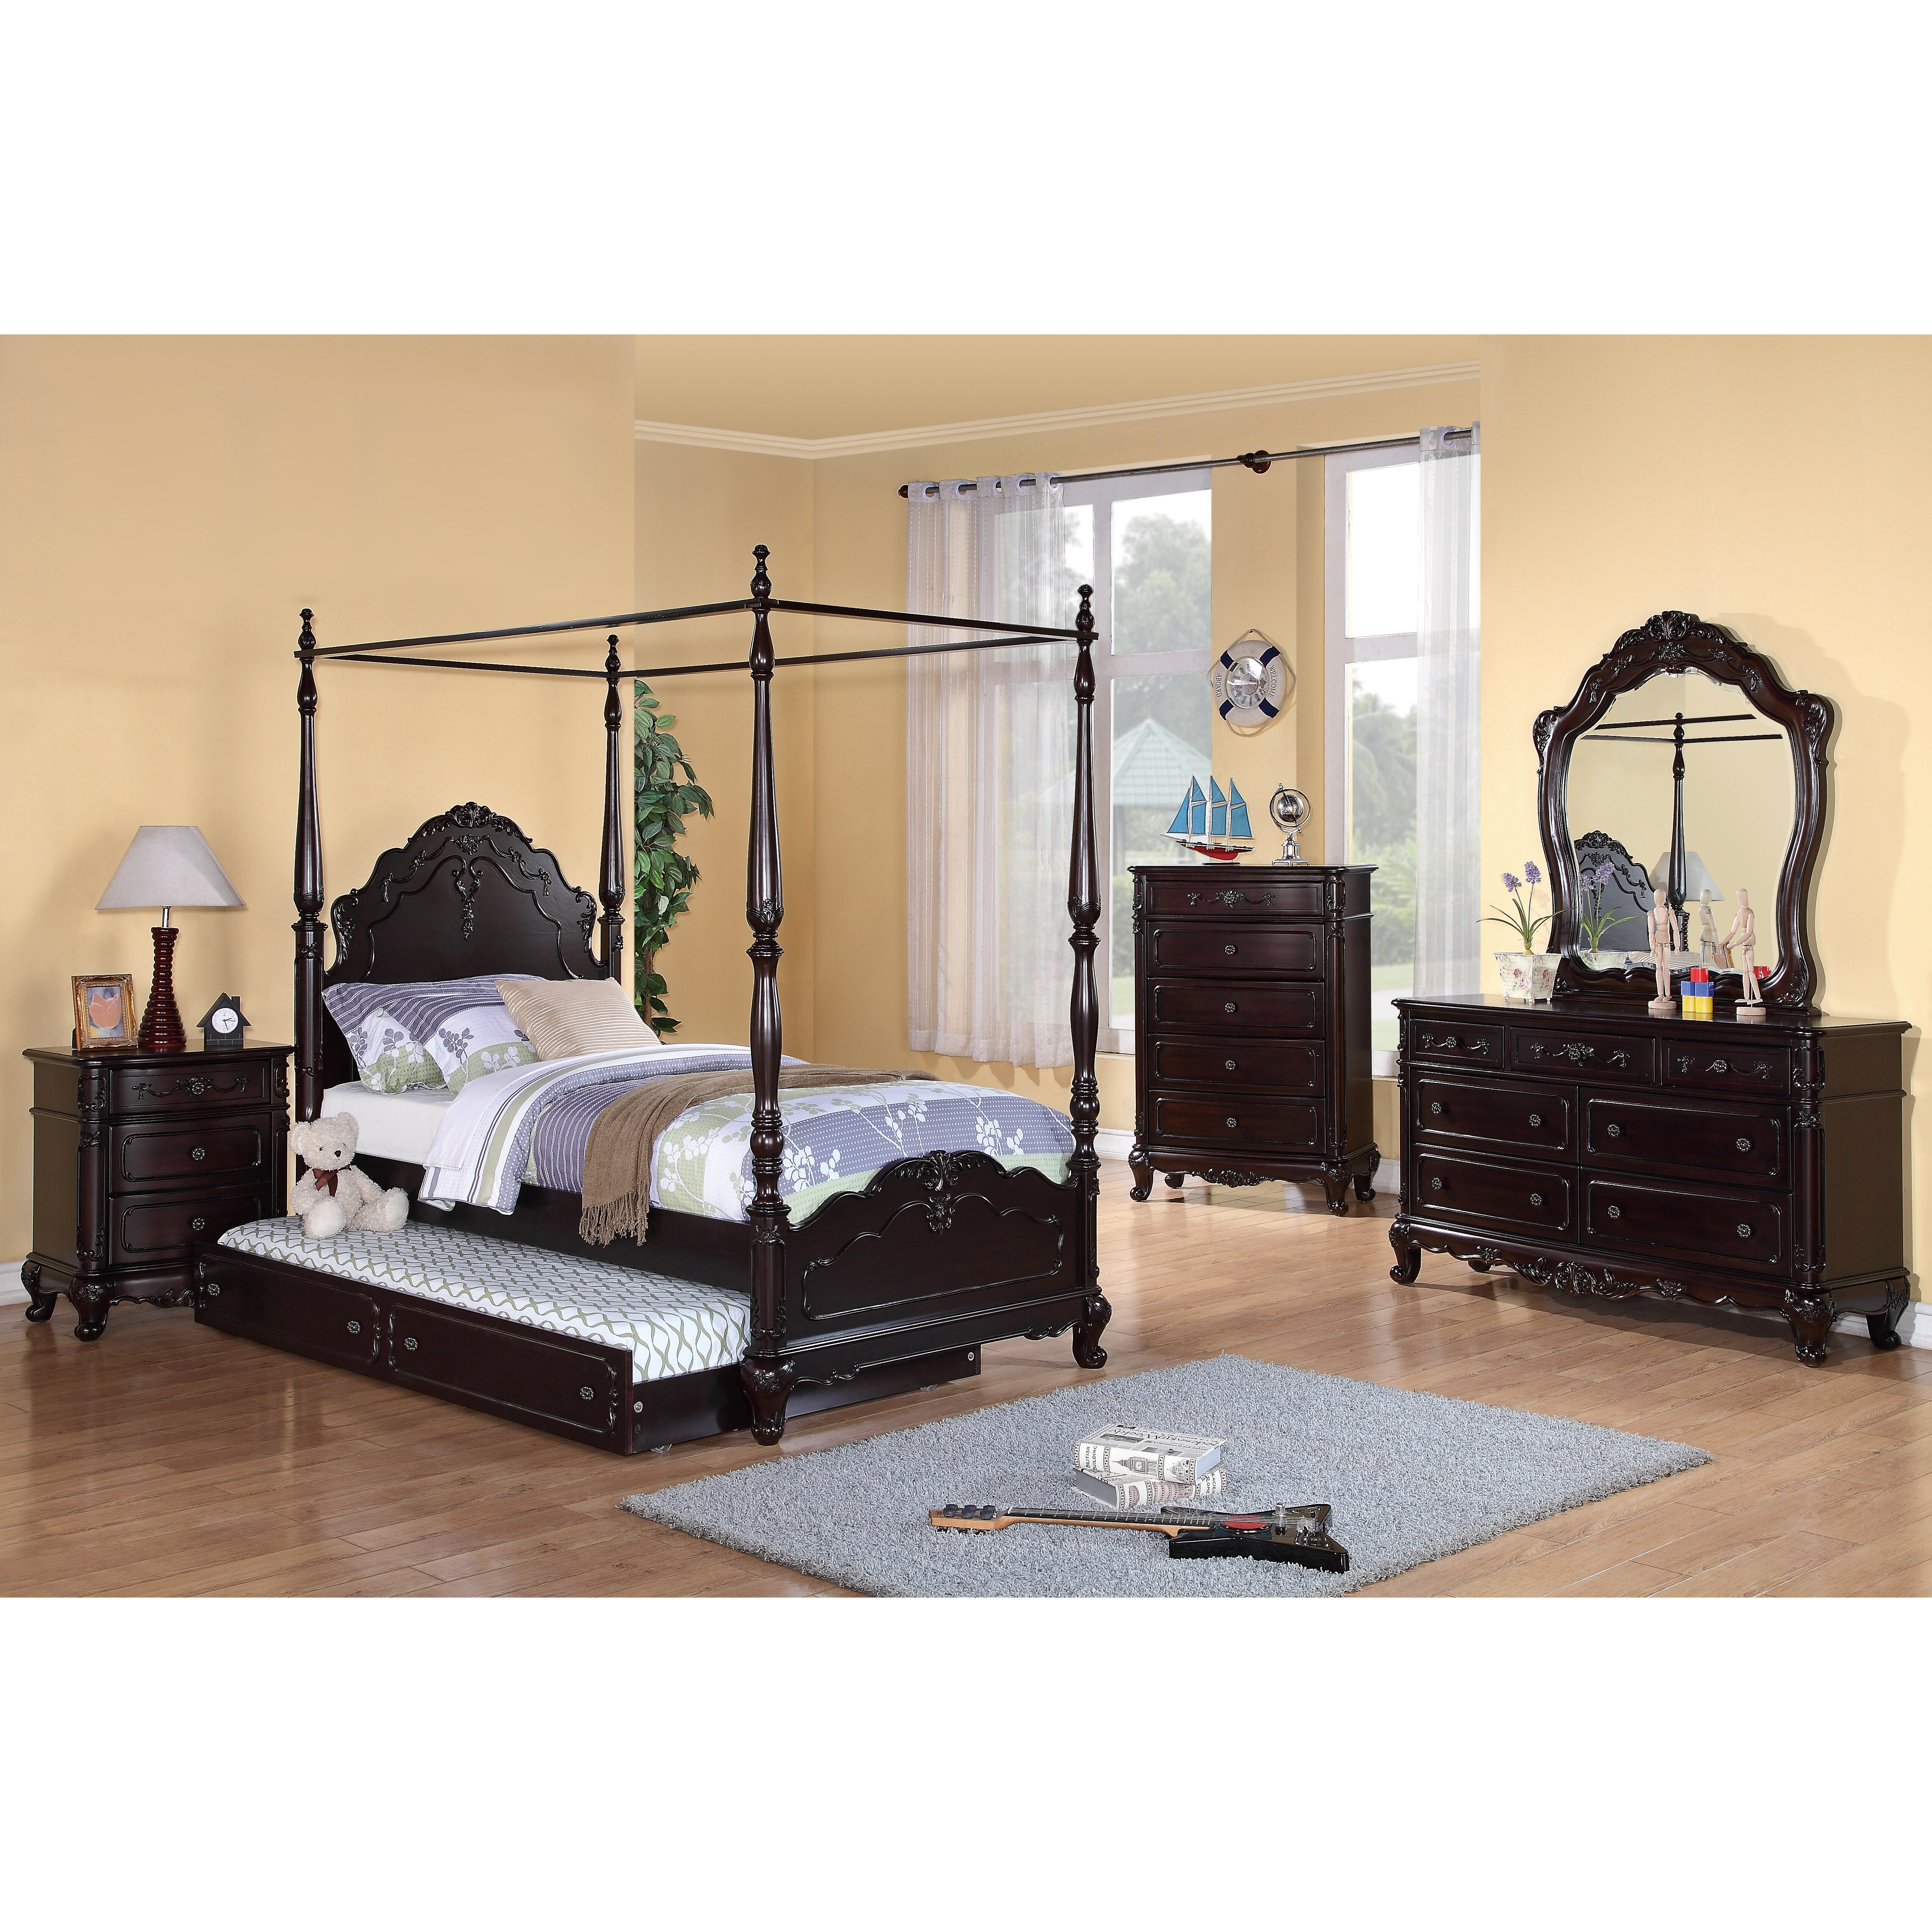 Woodhaven Hill Cinderella Canopy Bed & Reviews | Wayfair